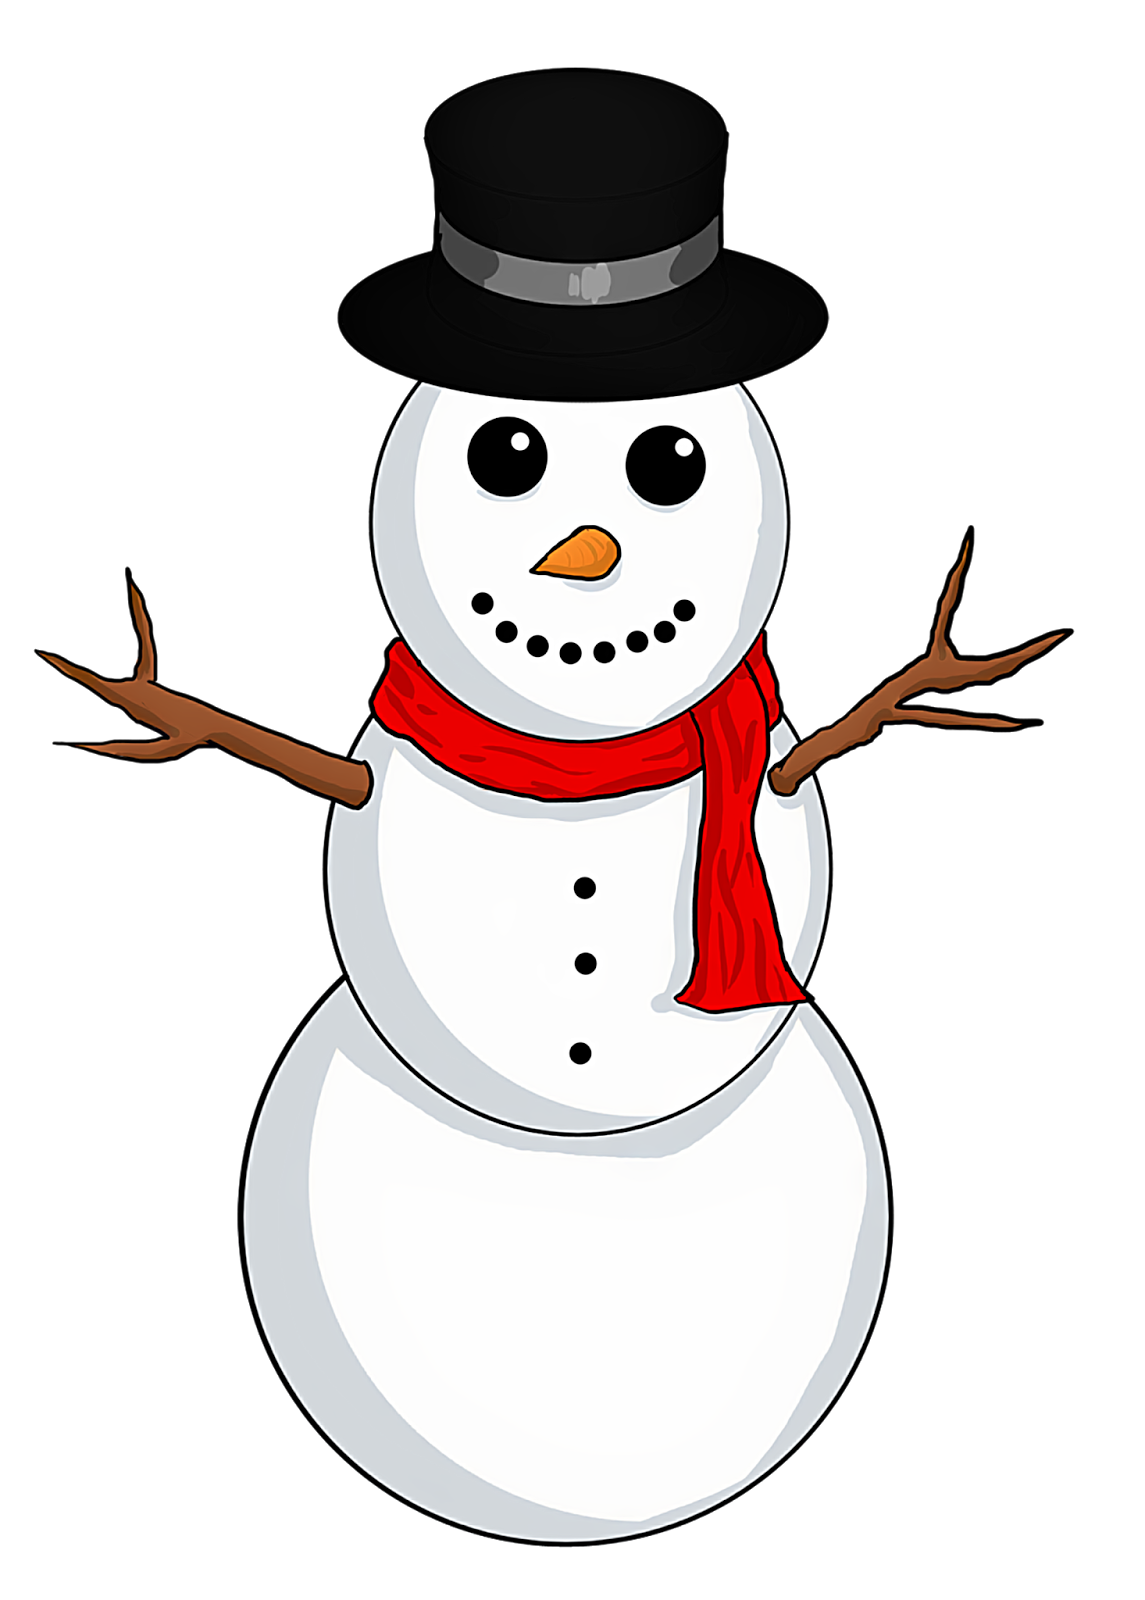 1145x1600 Snowman Clip Art Banners And Borders Free Stock Photo